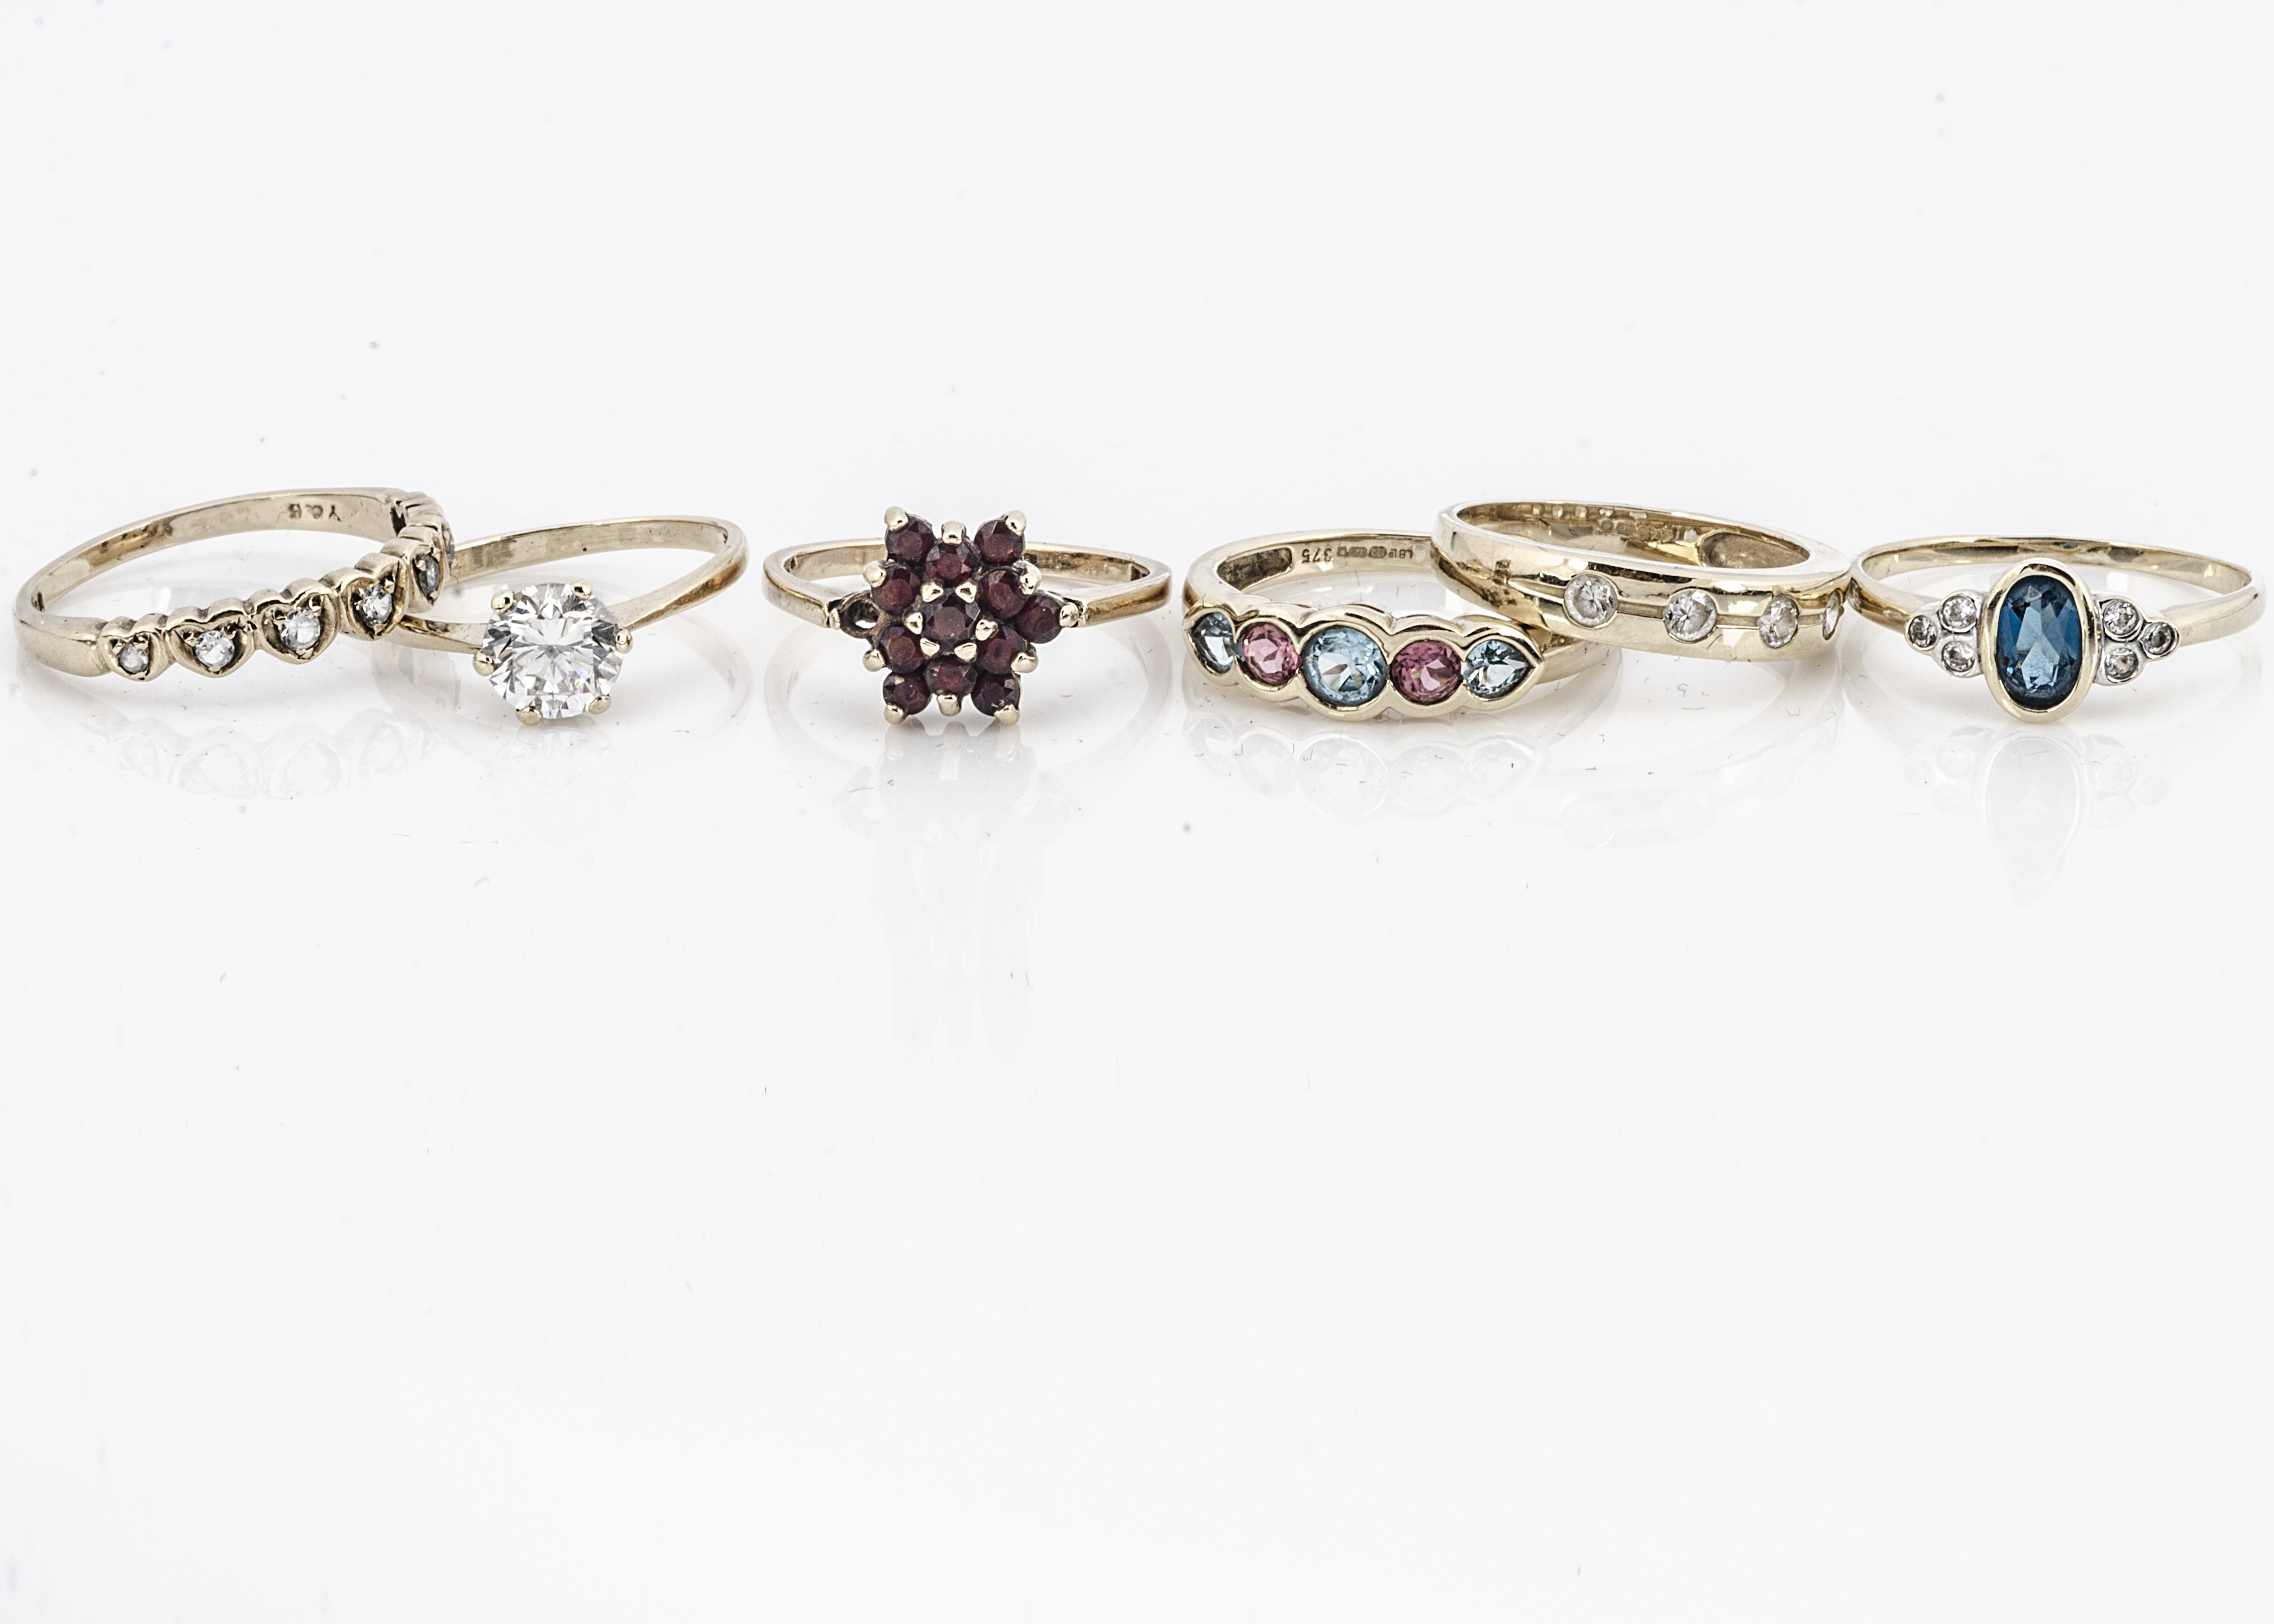 A collection of six 9ct gold gem set dress rings, including a cubic zirconia solitaire, garnet